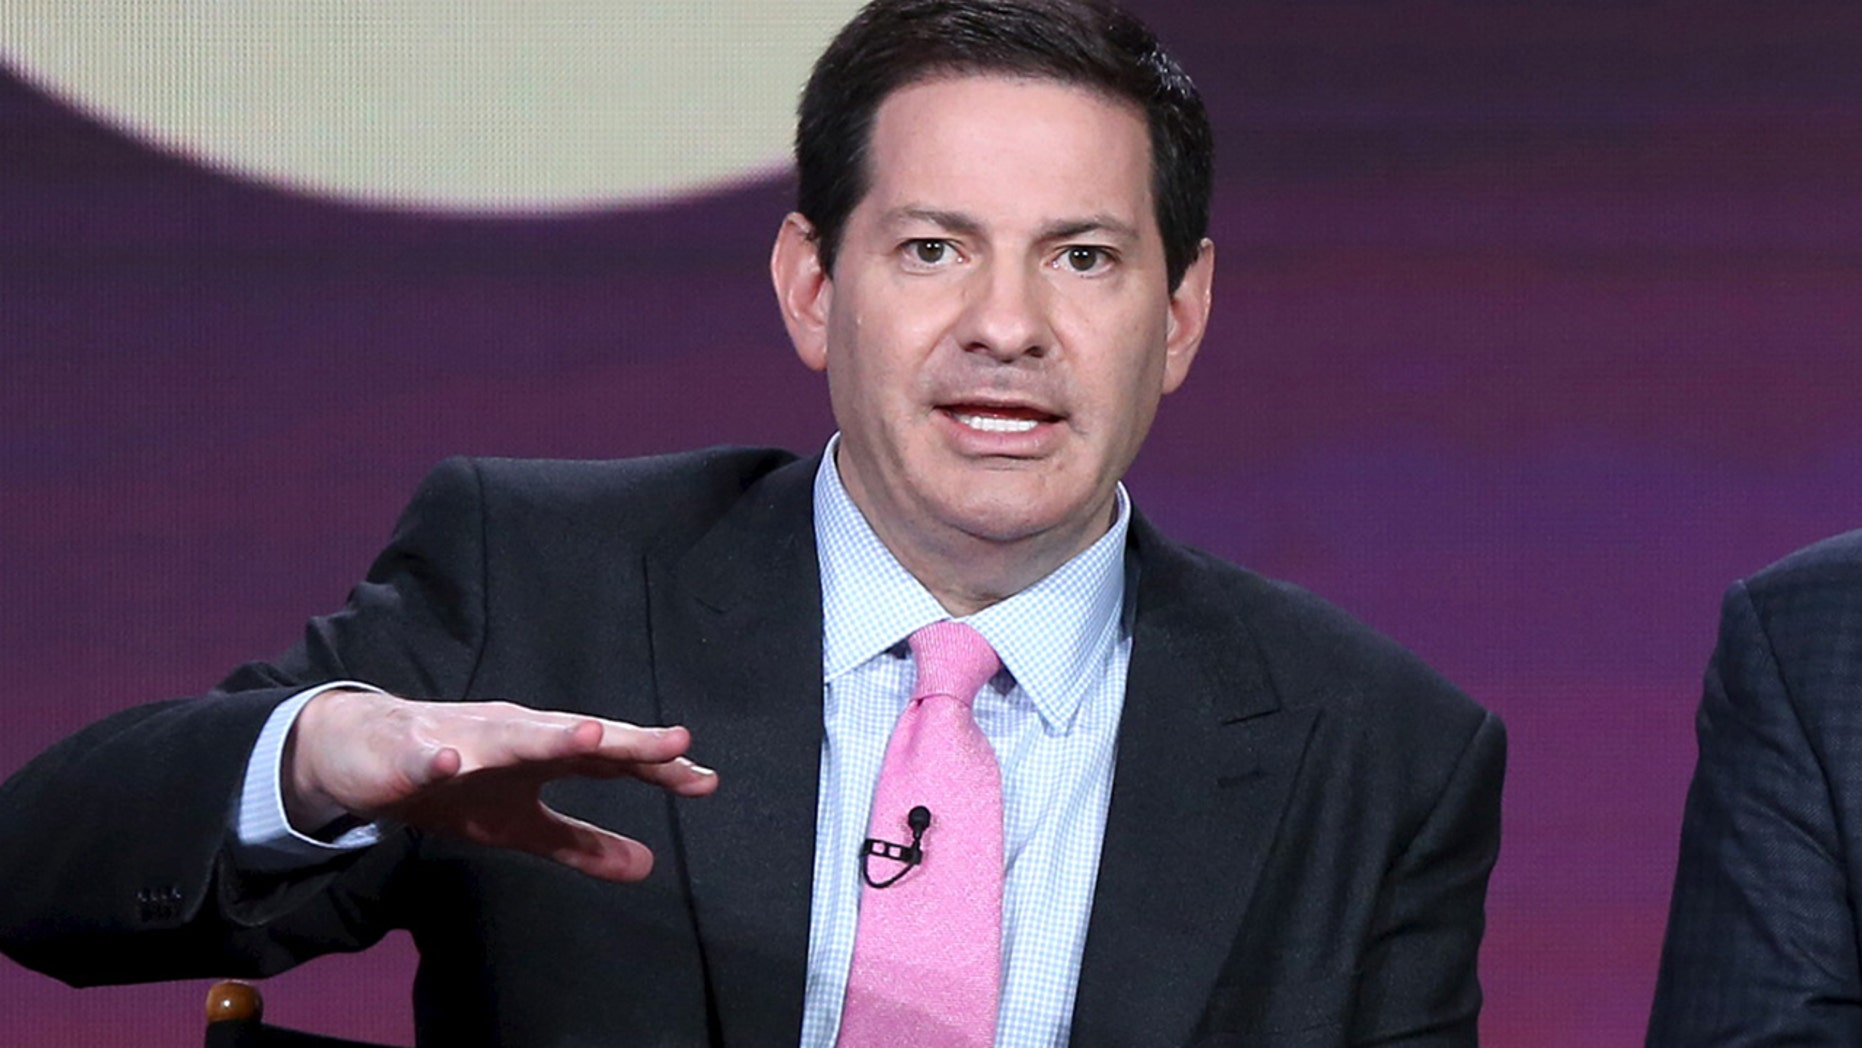 NBC, MSNBC and HBO cut ties with Mark Halperin in October after he was accused of mistreating female colleagues.